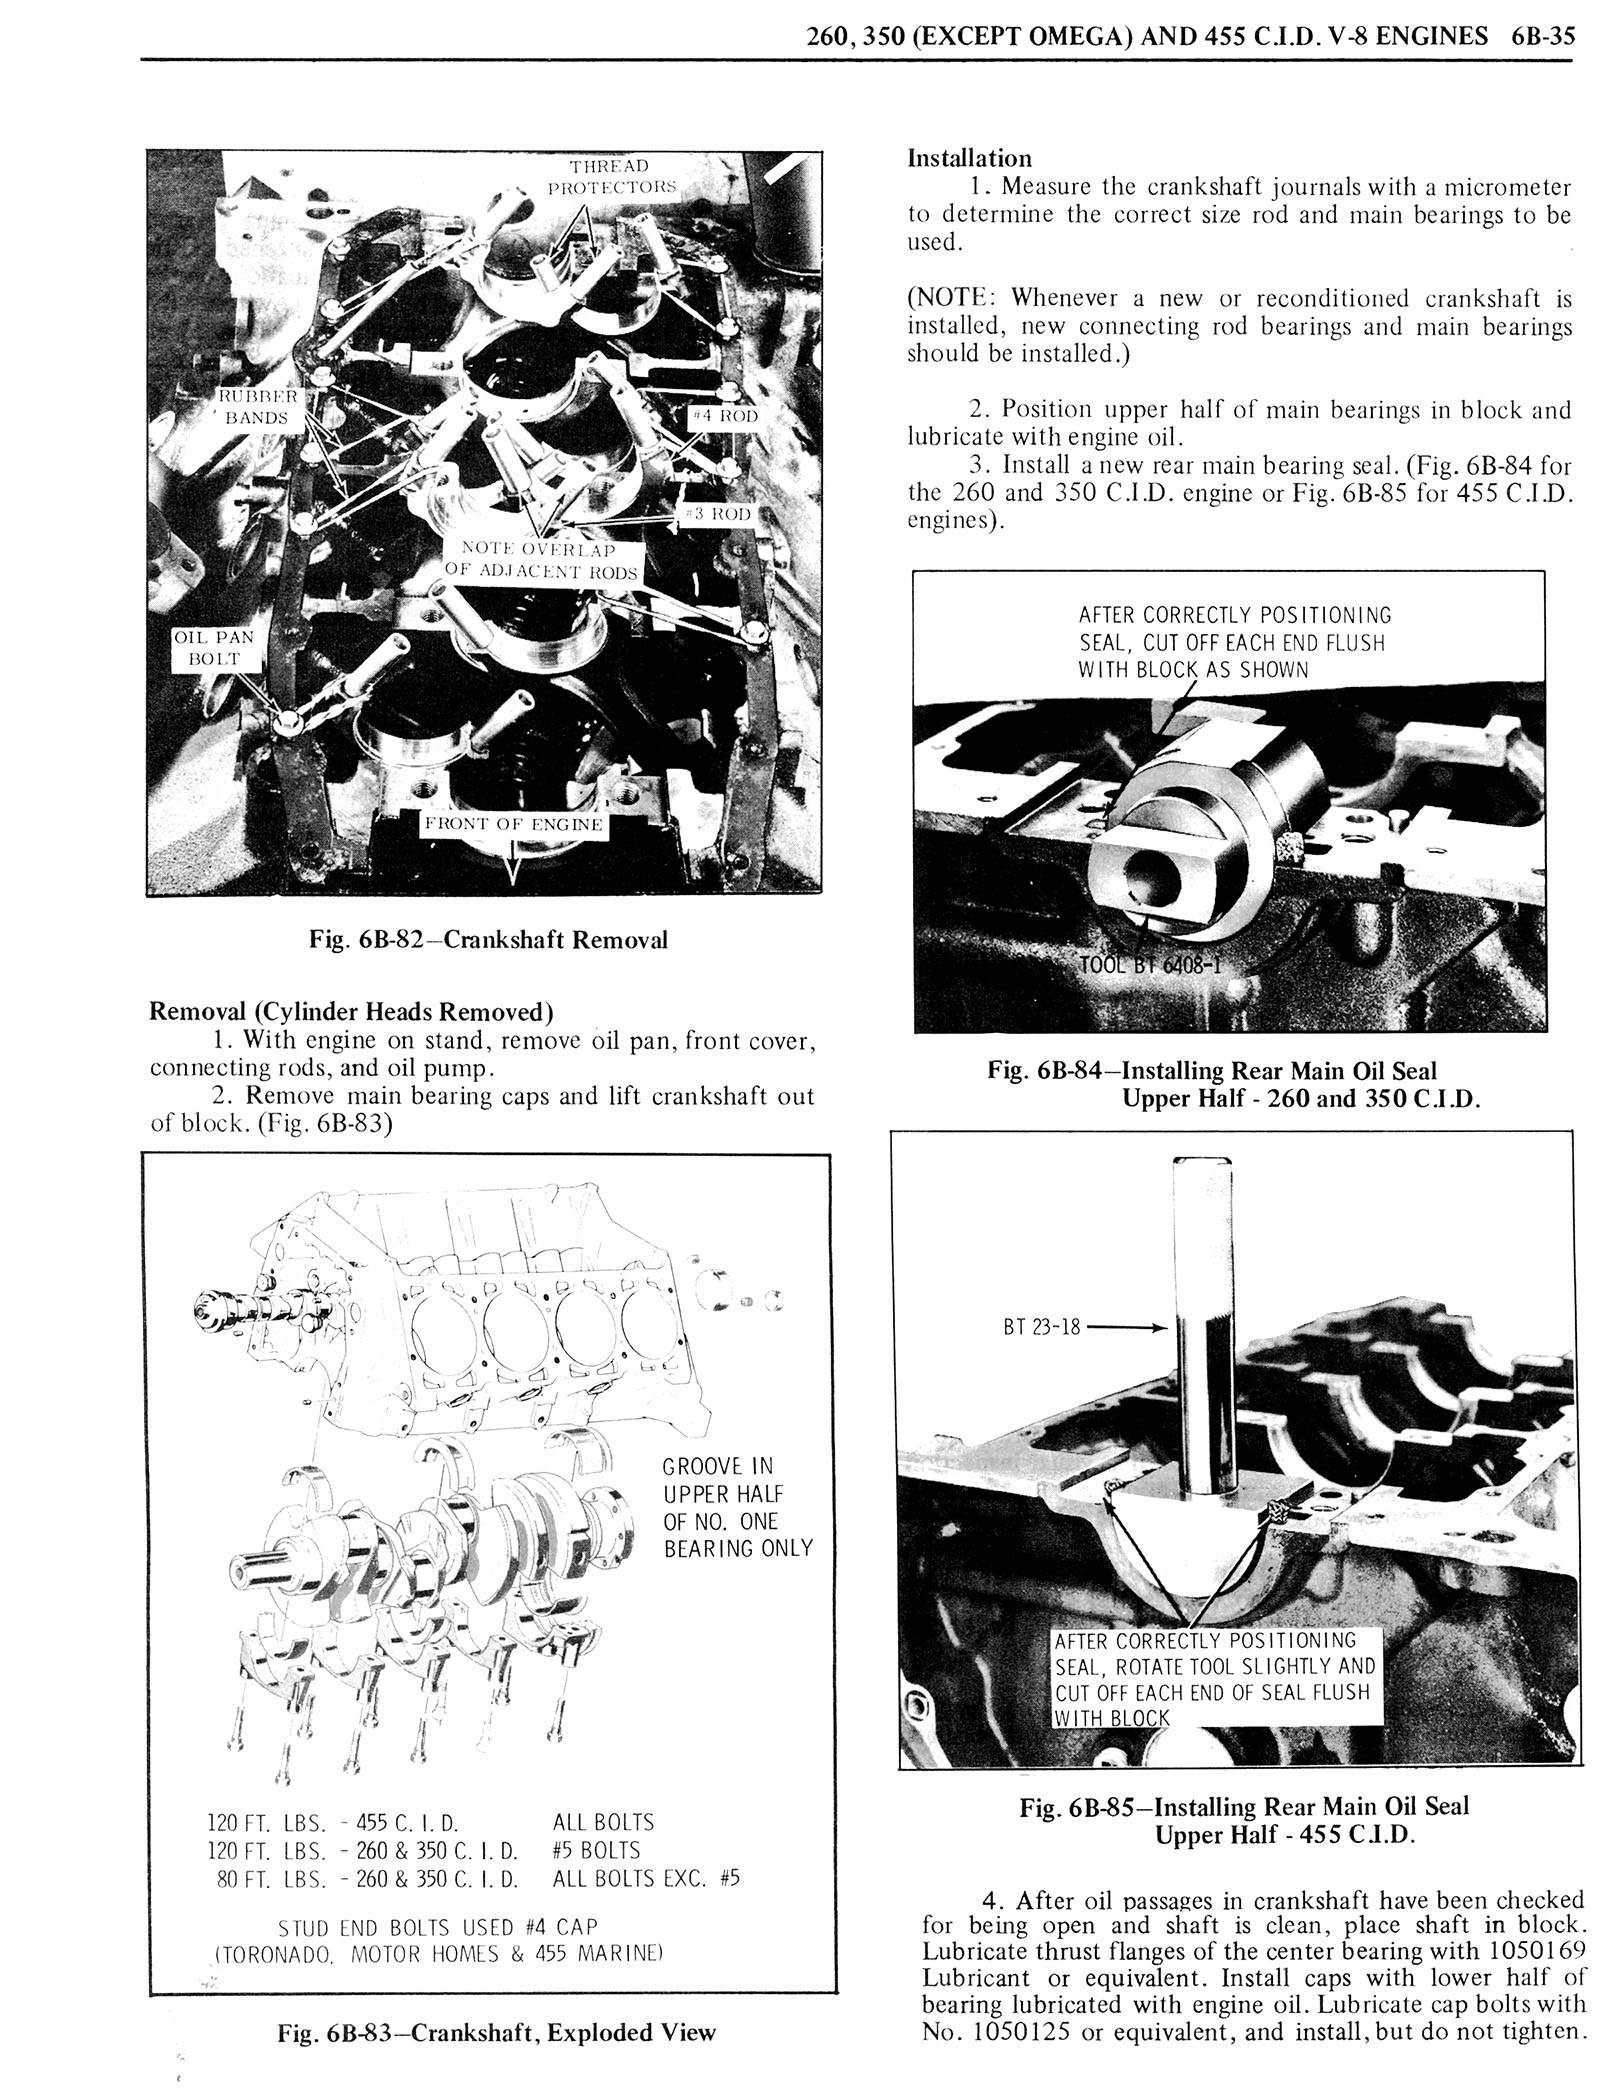 1976 Oldsmobile Service Manual page 454 of 1390